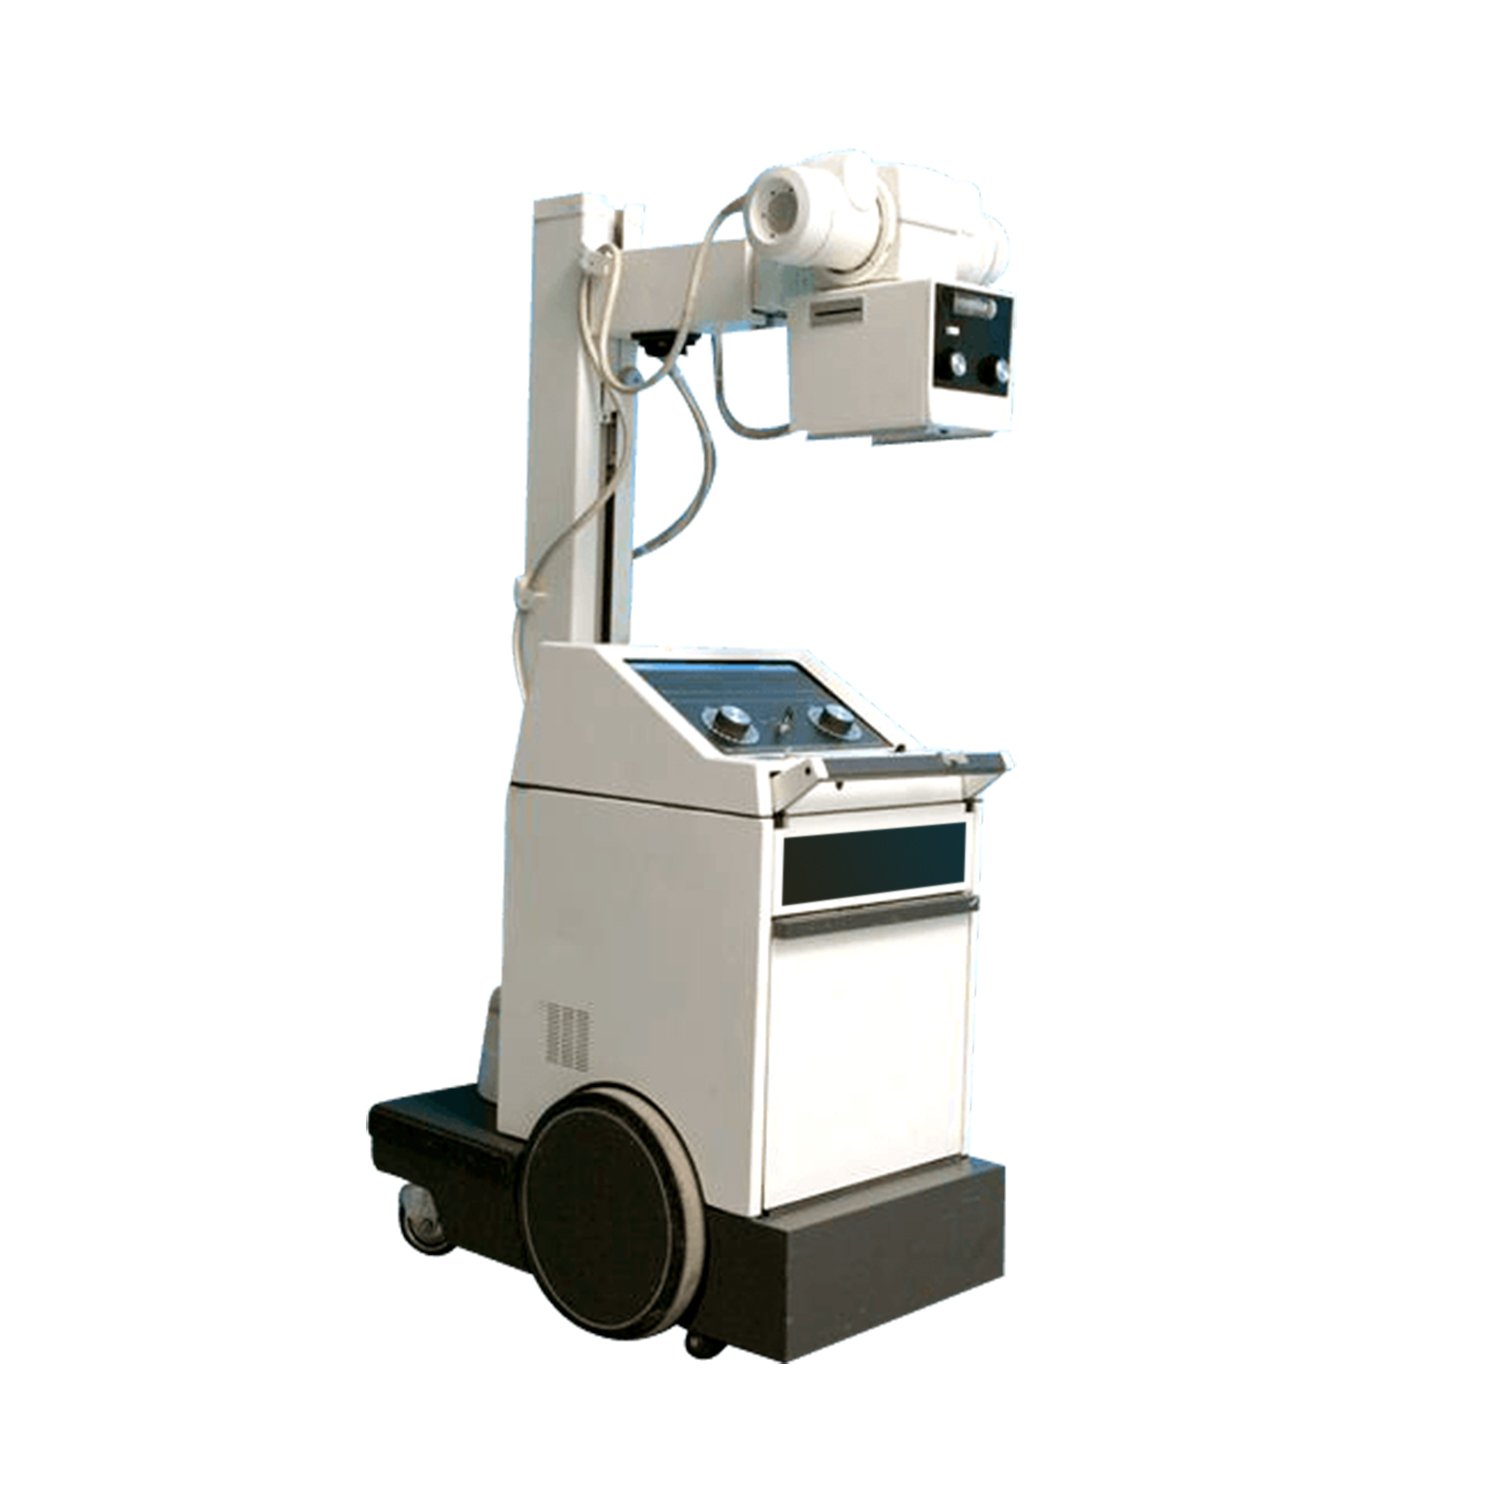 Awesome Medical Equipment Ge Amx Iii Portable X Ray Machine Download Free Architecture Designs Scobabritishbridgeorg